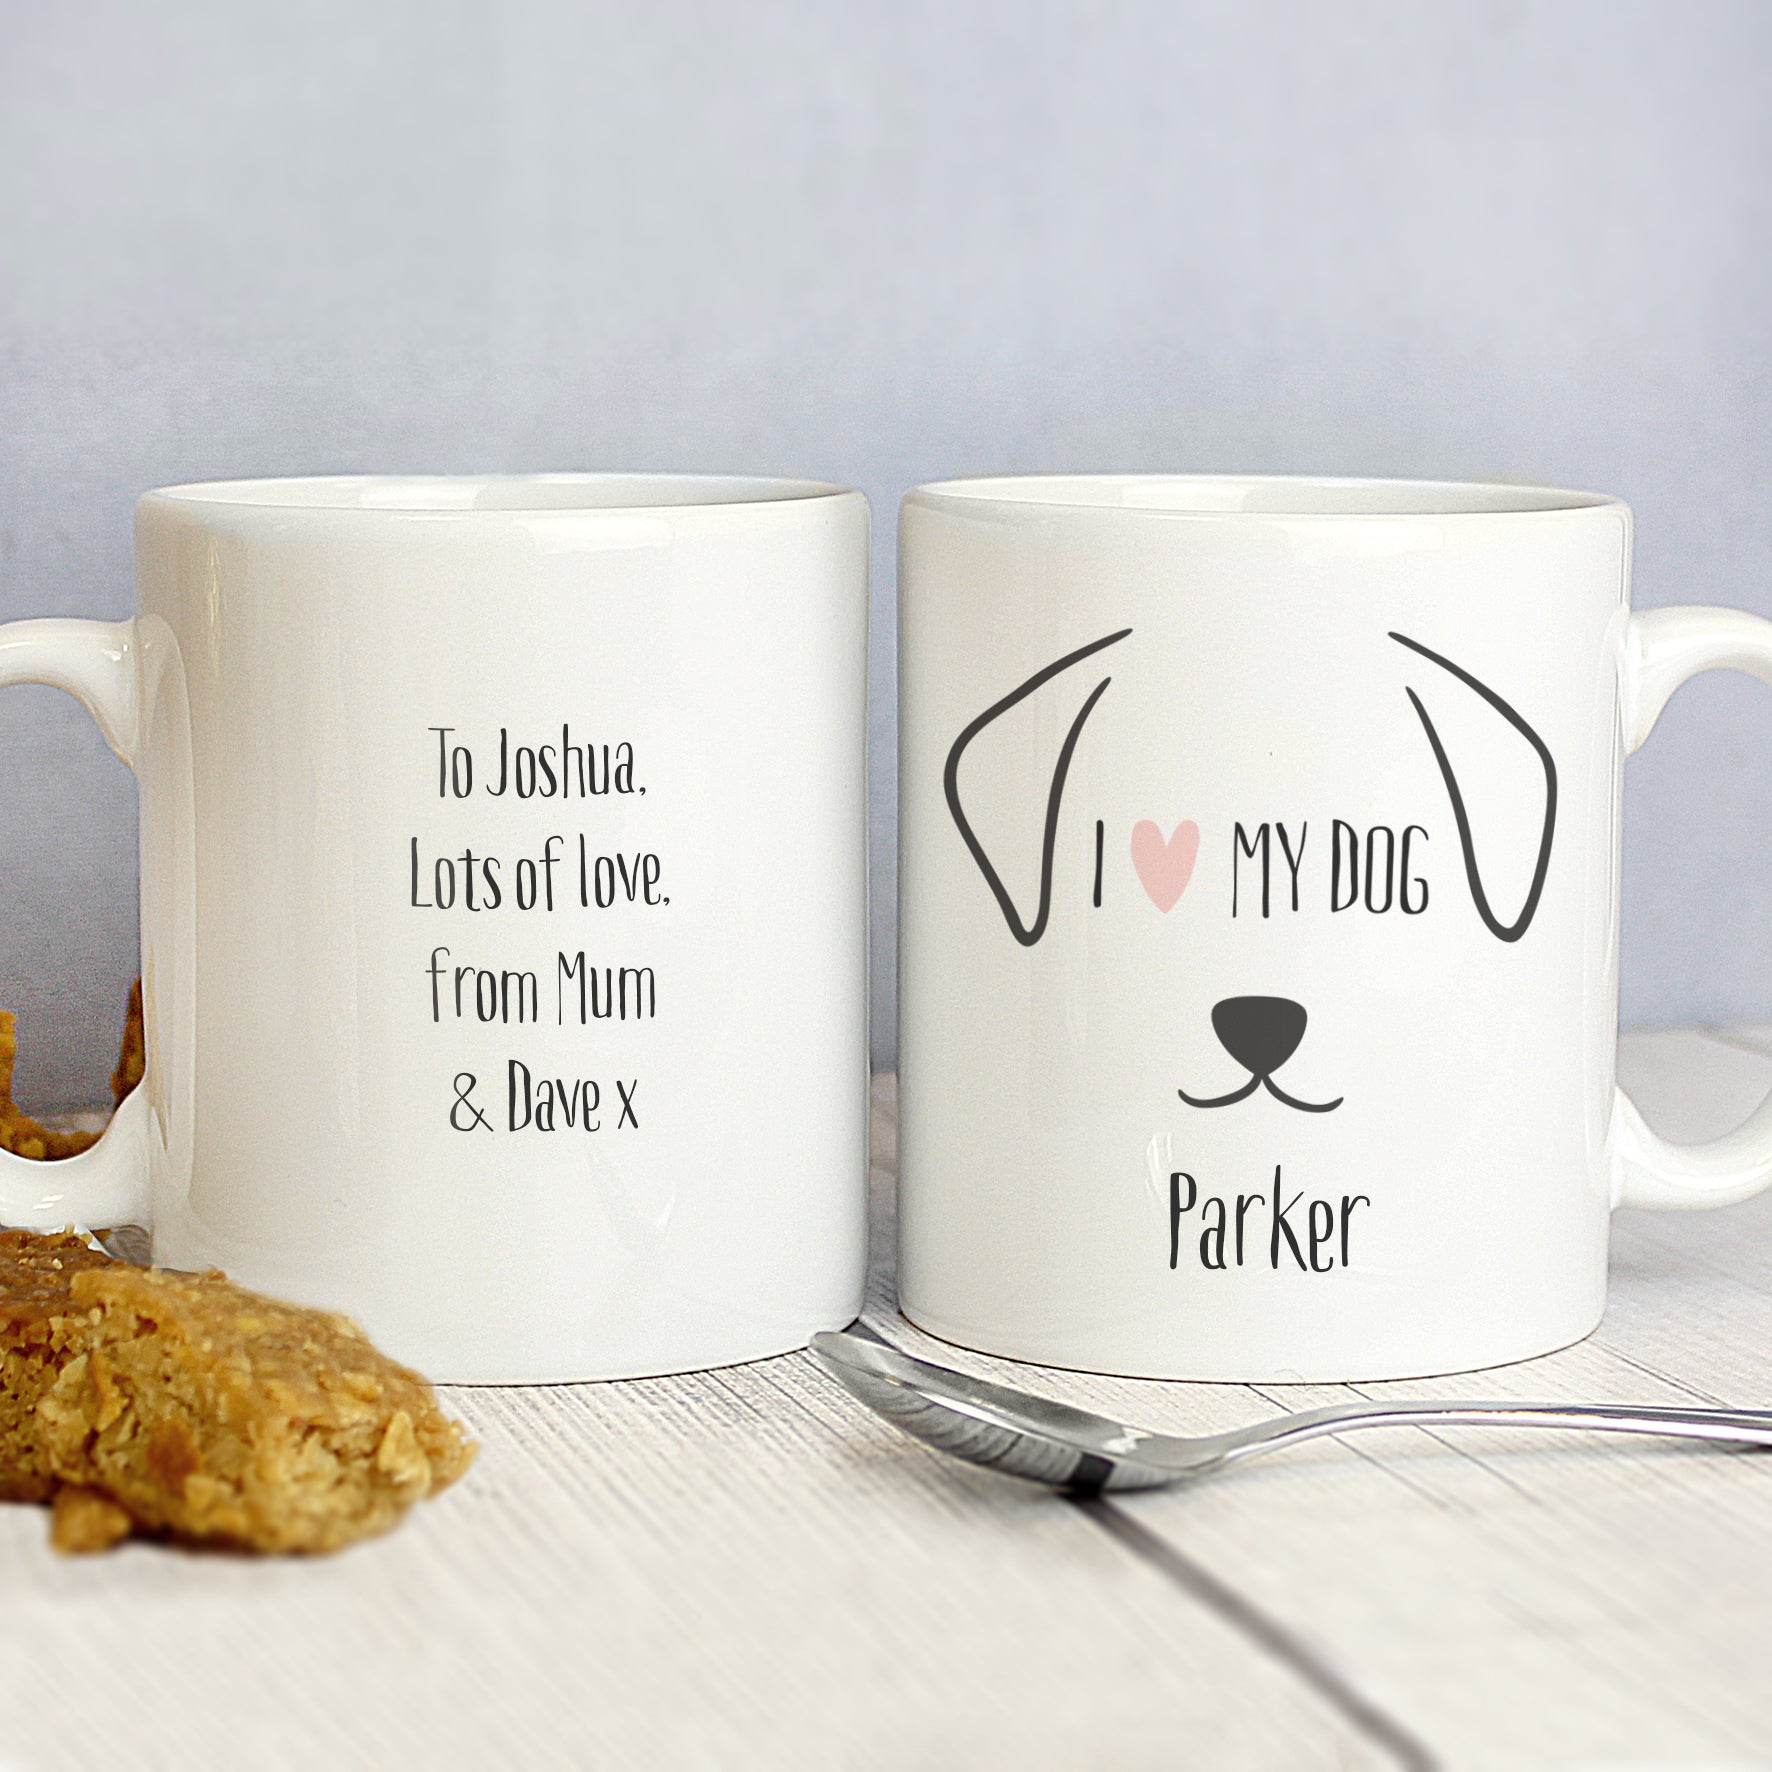 Front and back image of a white ceramic mug with a fun dog illustration that can be personalised with a dog's name and a message of your choice